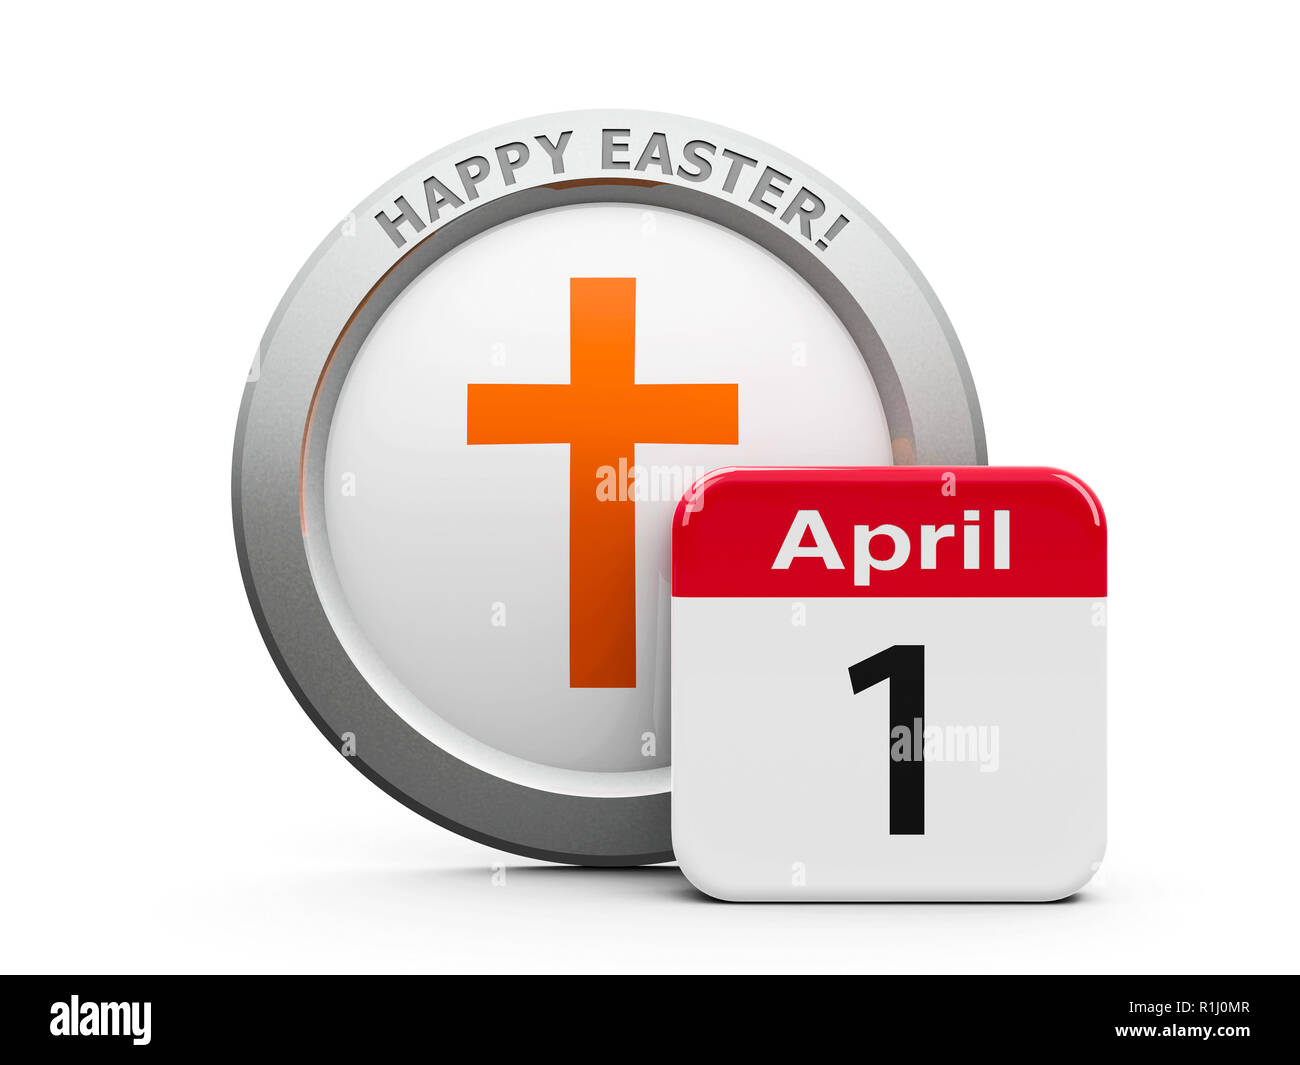 Emblem of cross with calendar button - The First of April - represents Happy Easter 2018, three-dimensional rendering, 3D illustration Stock Photo